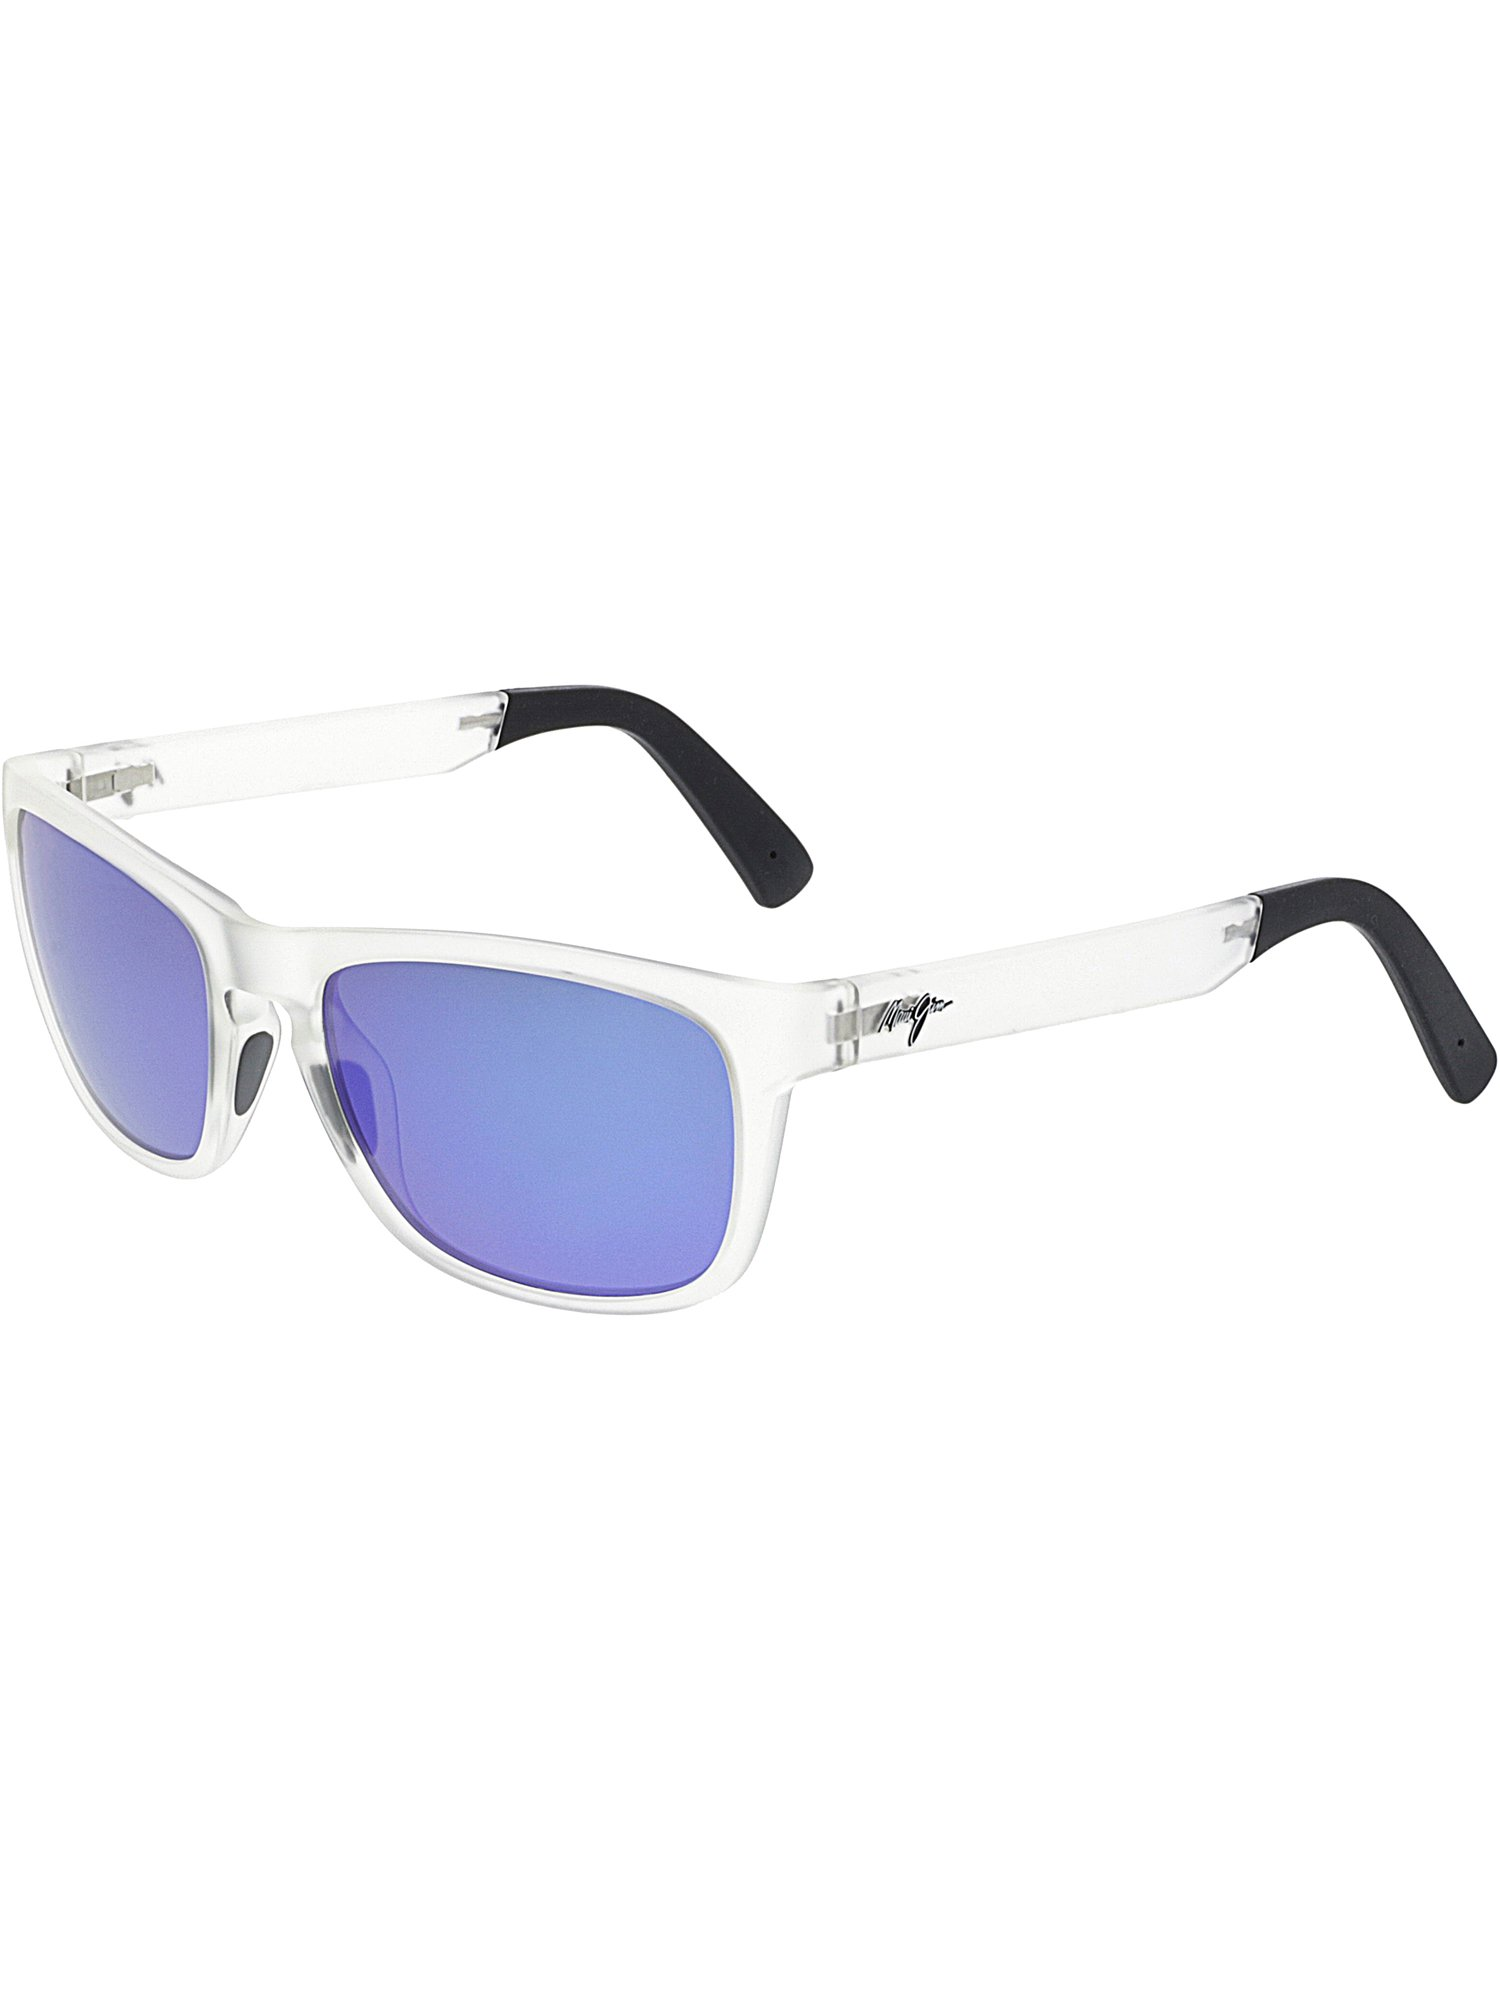 b661838eb5aa Maui Jim - Maui Jim Polarized South Swell B755-05CM Clear Rectangle  Sunglasses - Walmart.com